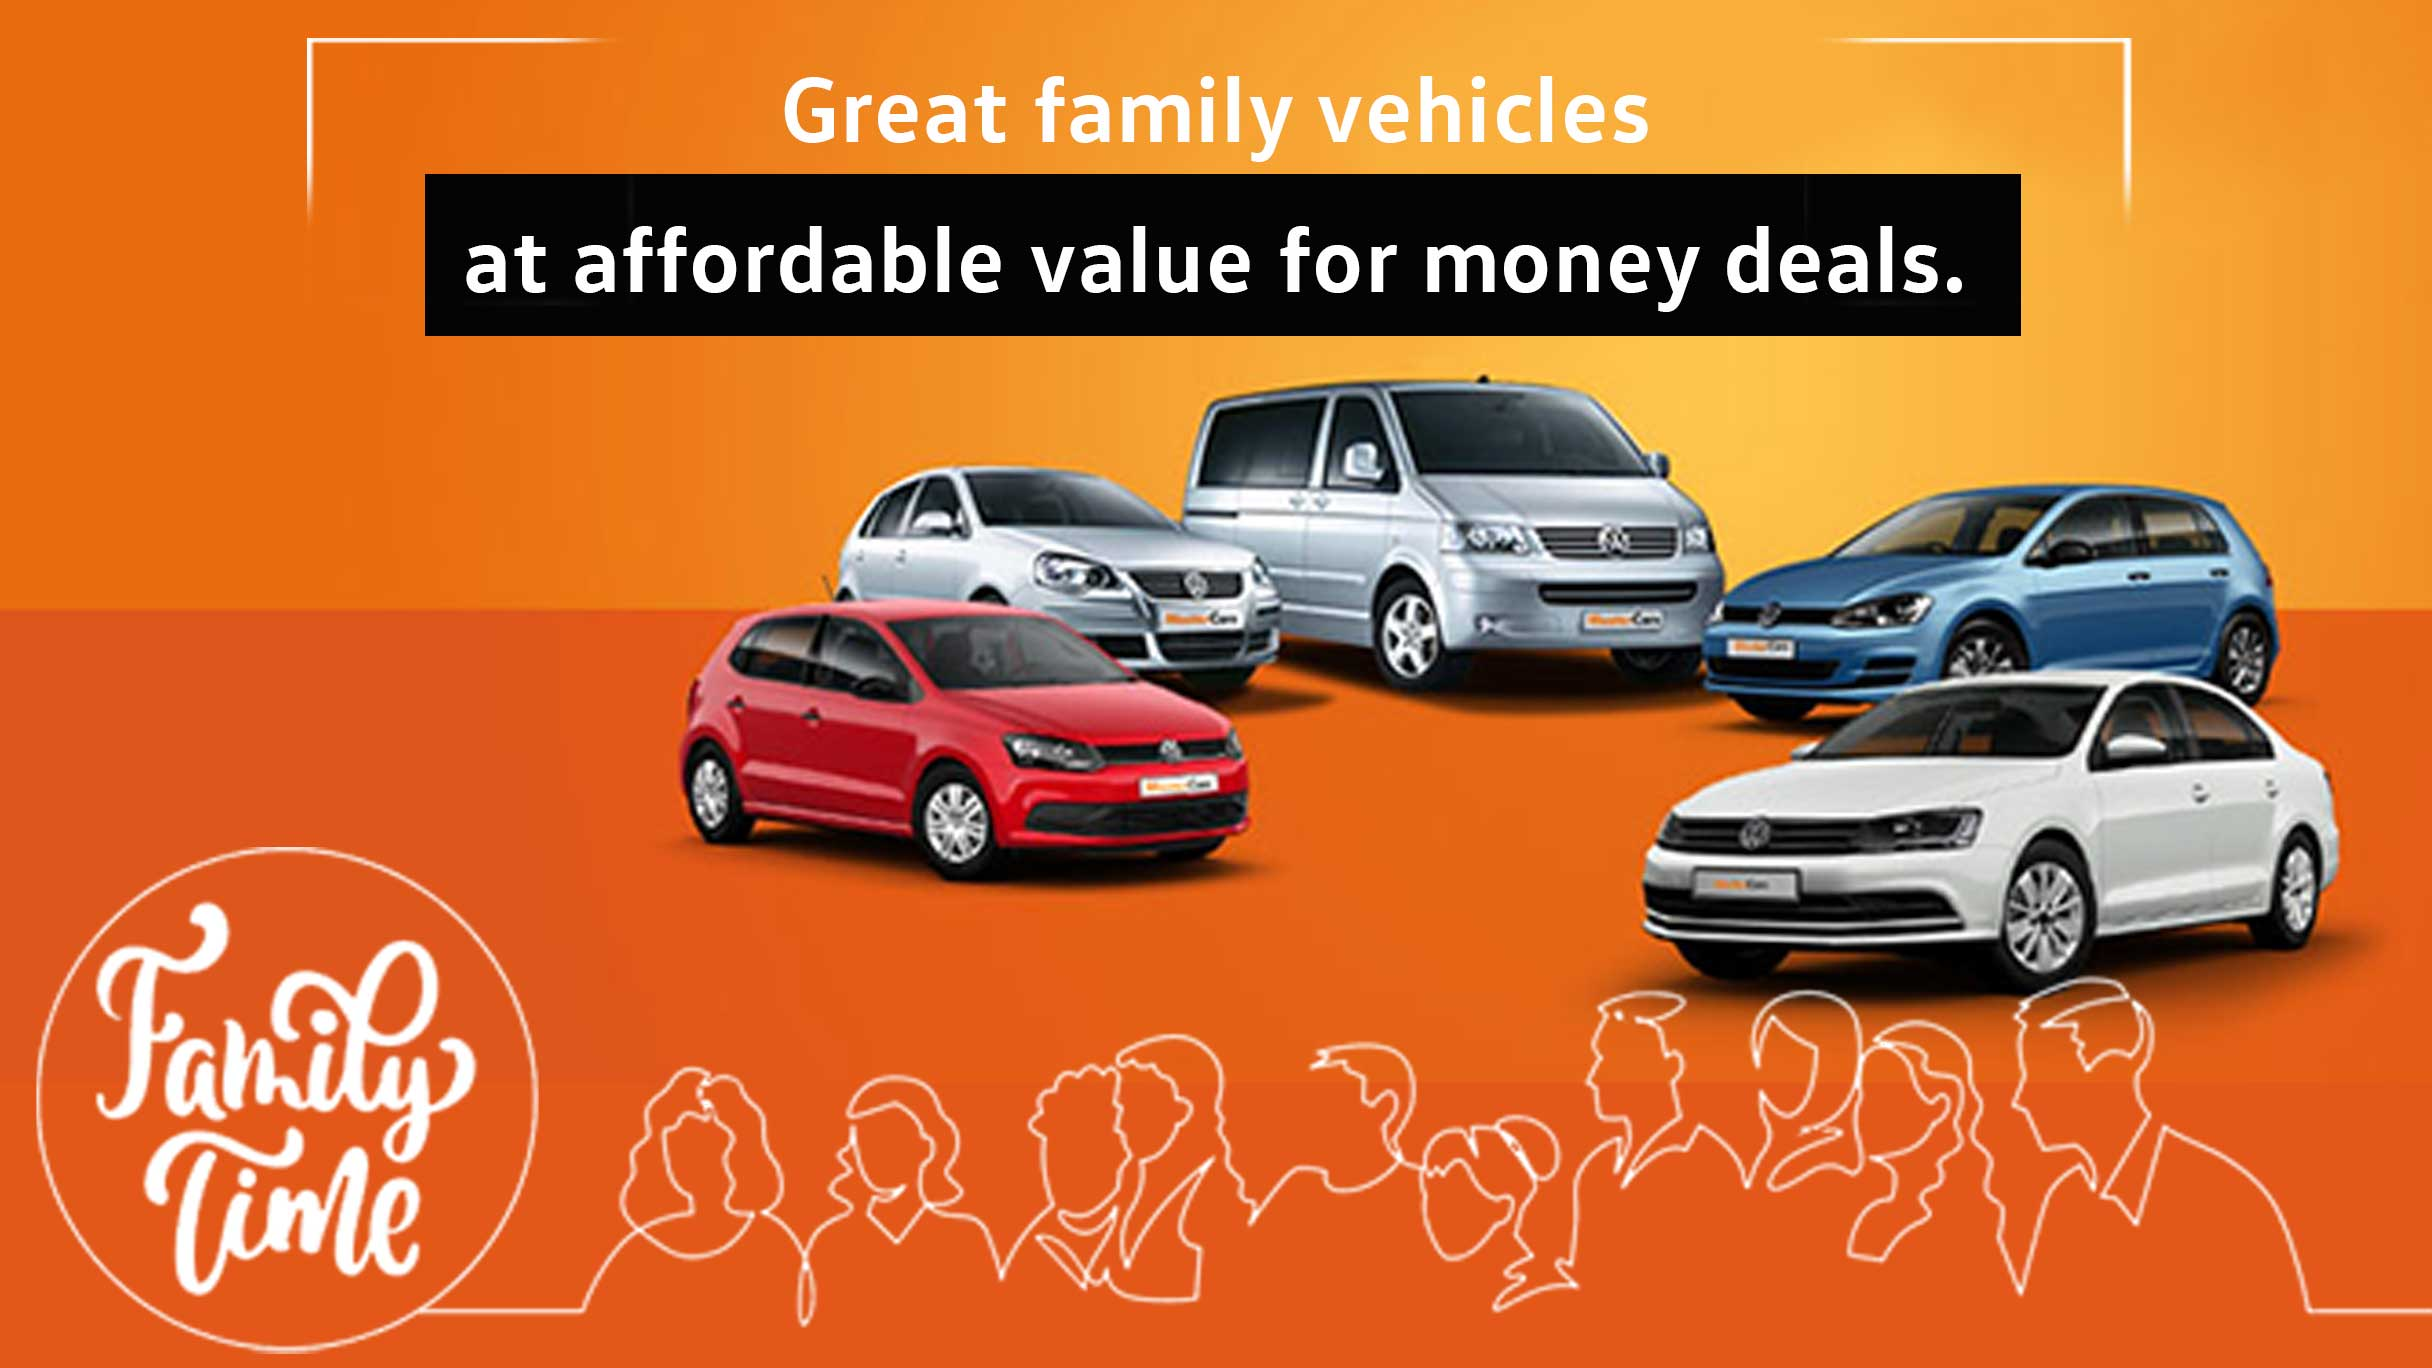 Barons Bruma great family vehicle offer image